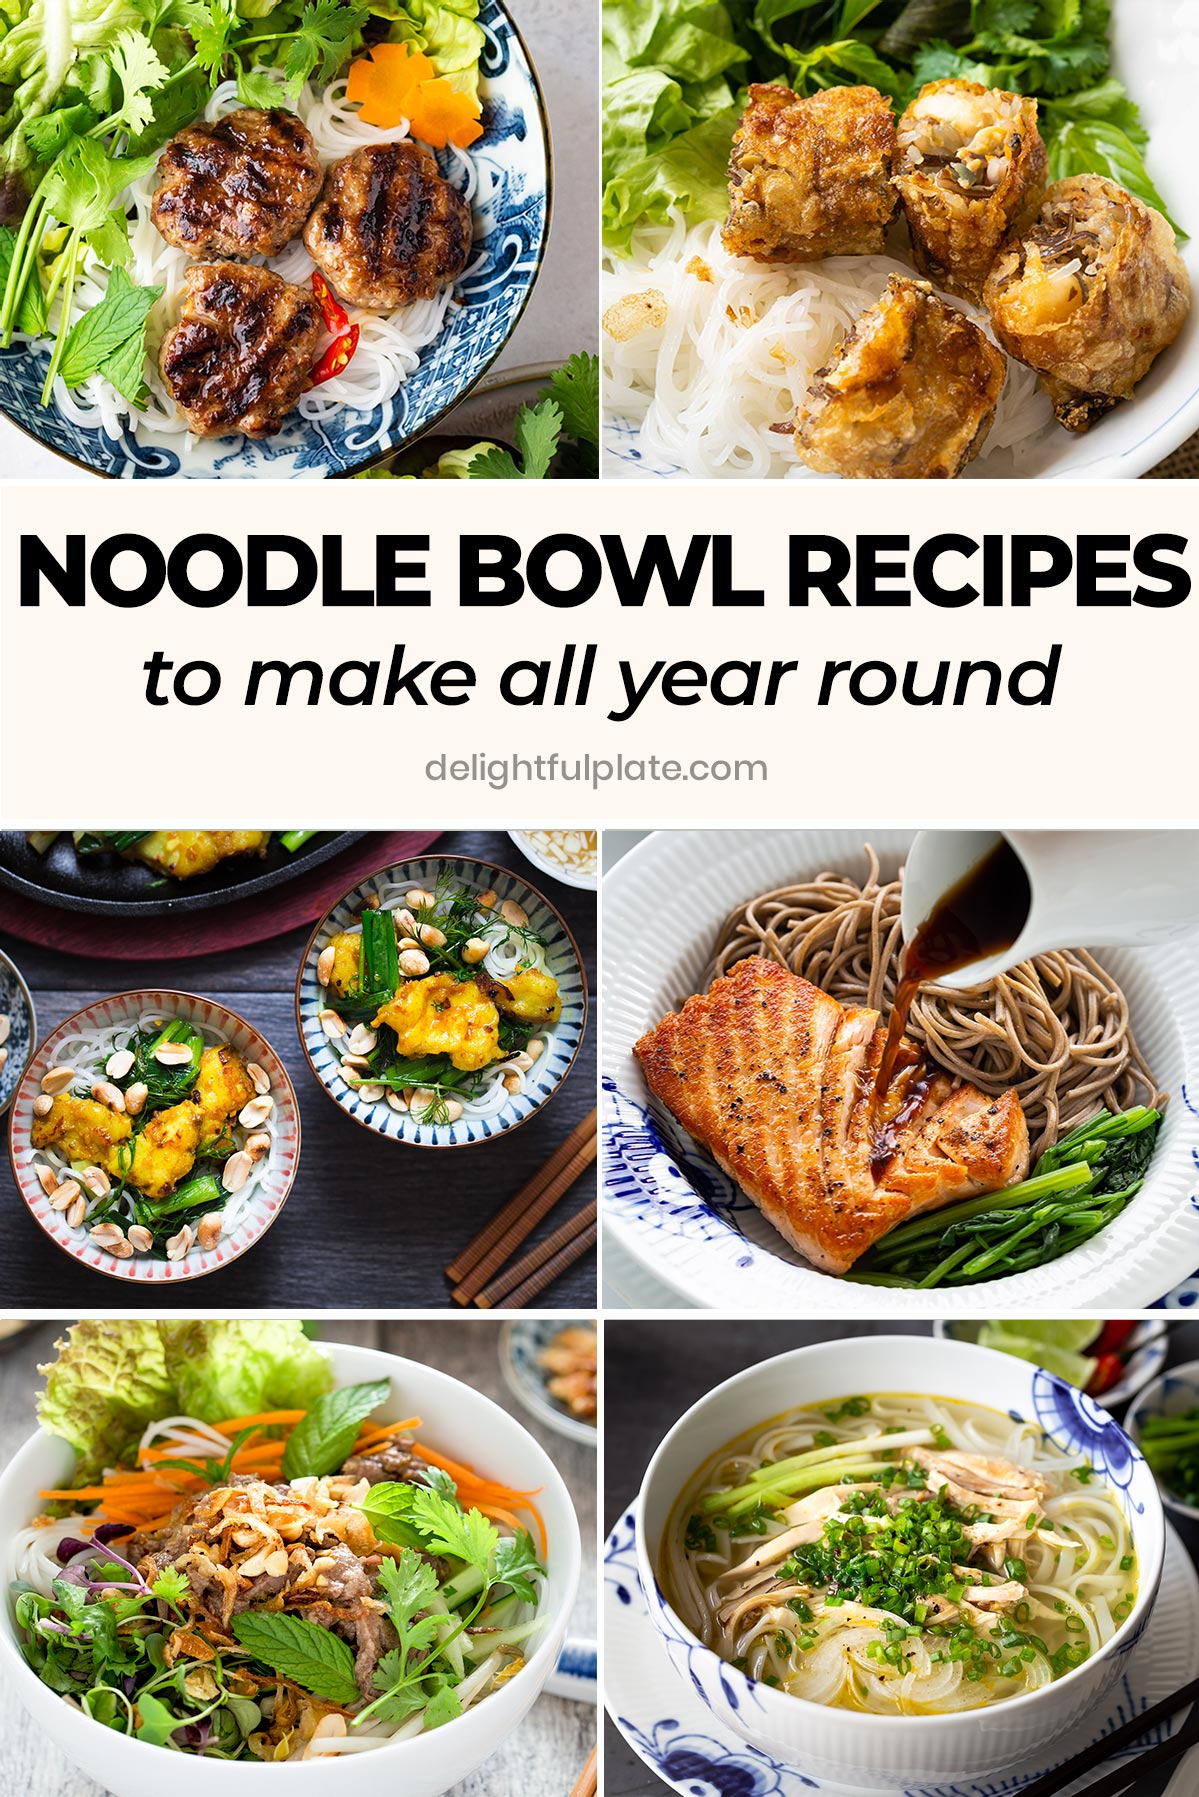 a collage of noodle bowl dishes